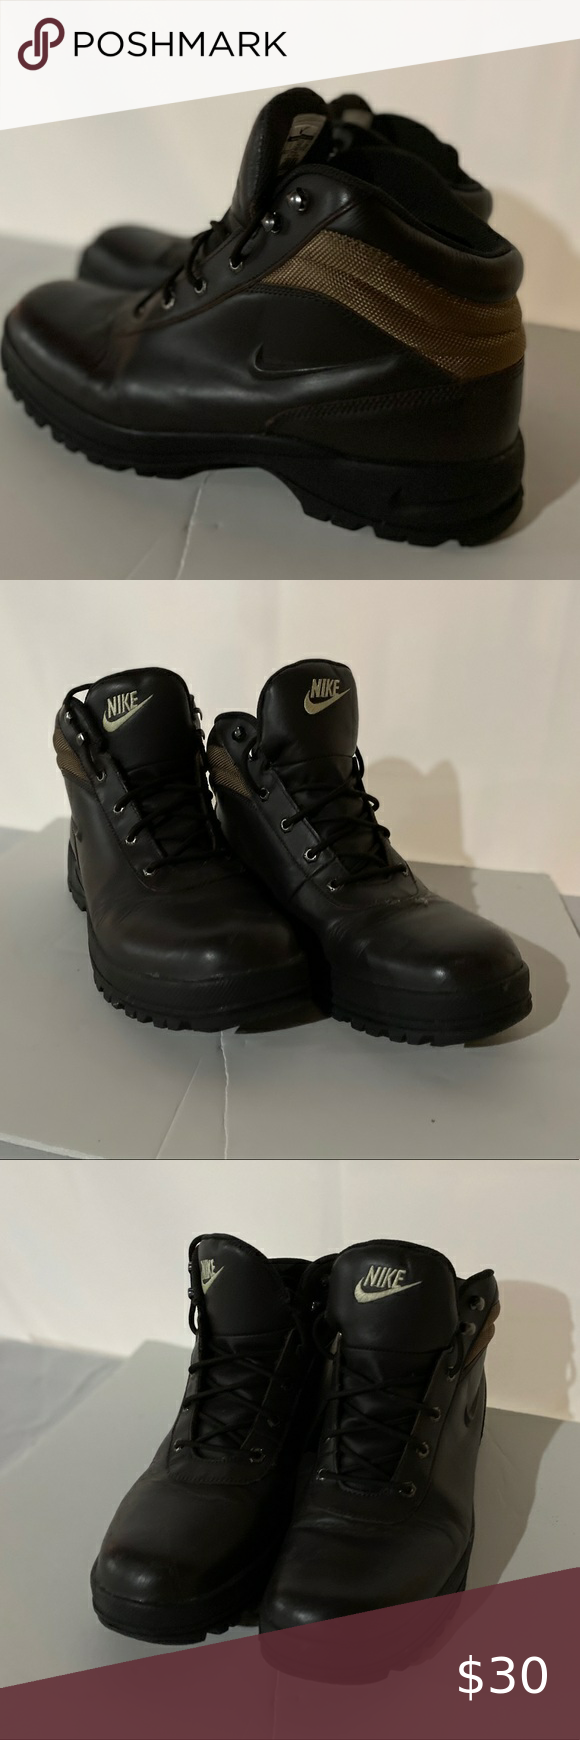 Nike ACG mens boots - brown leather - size 11 in 2020 ...